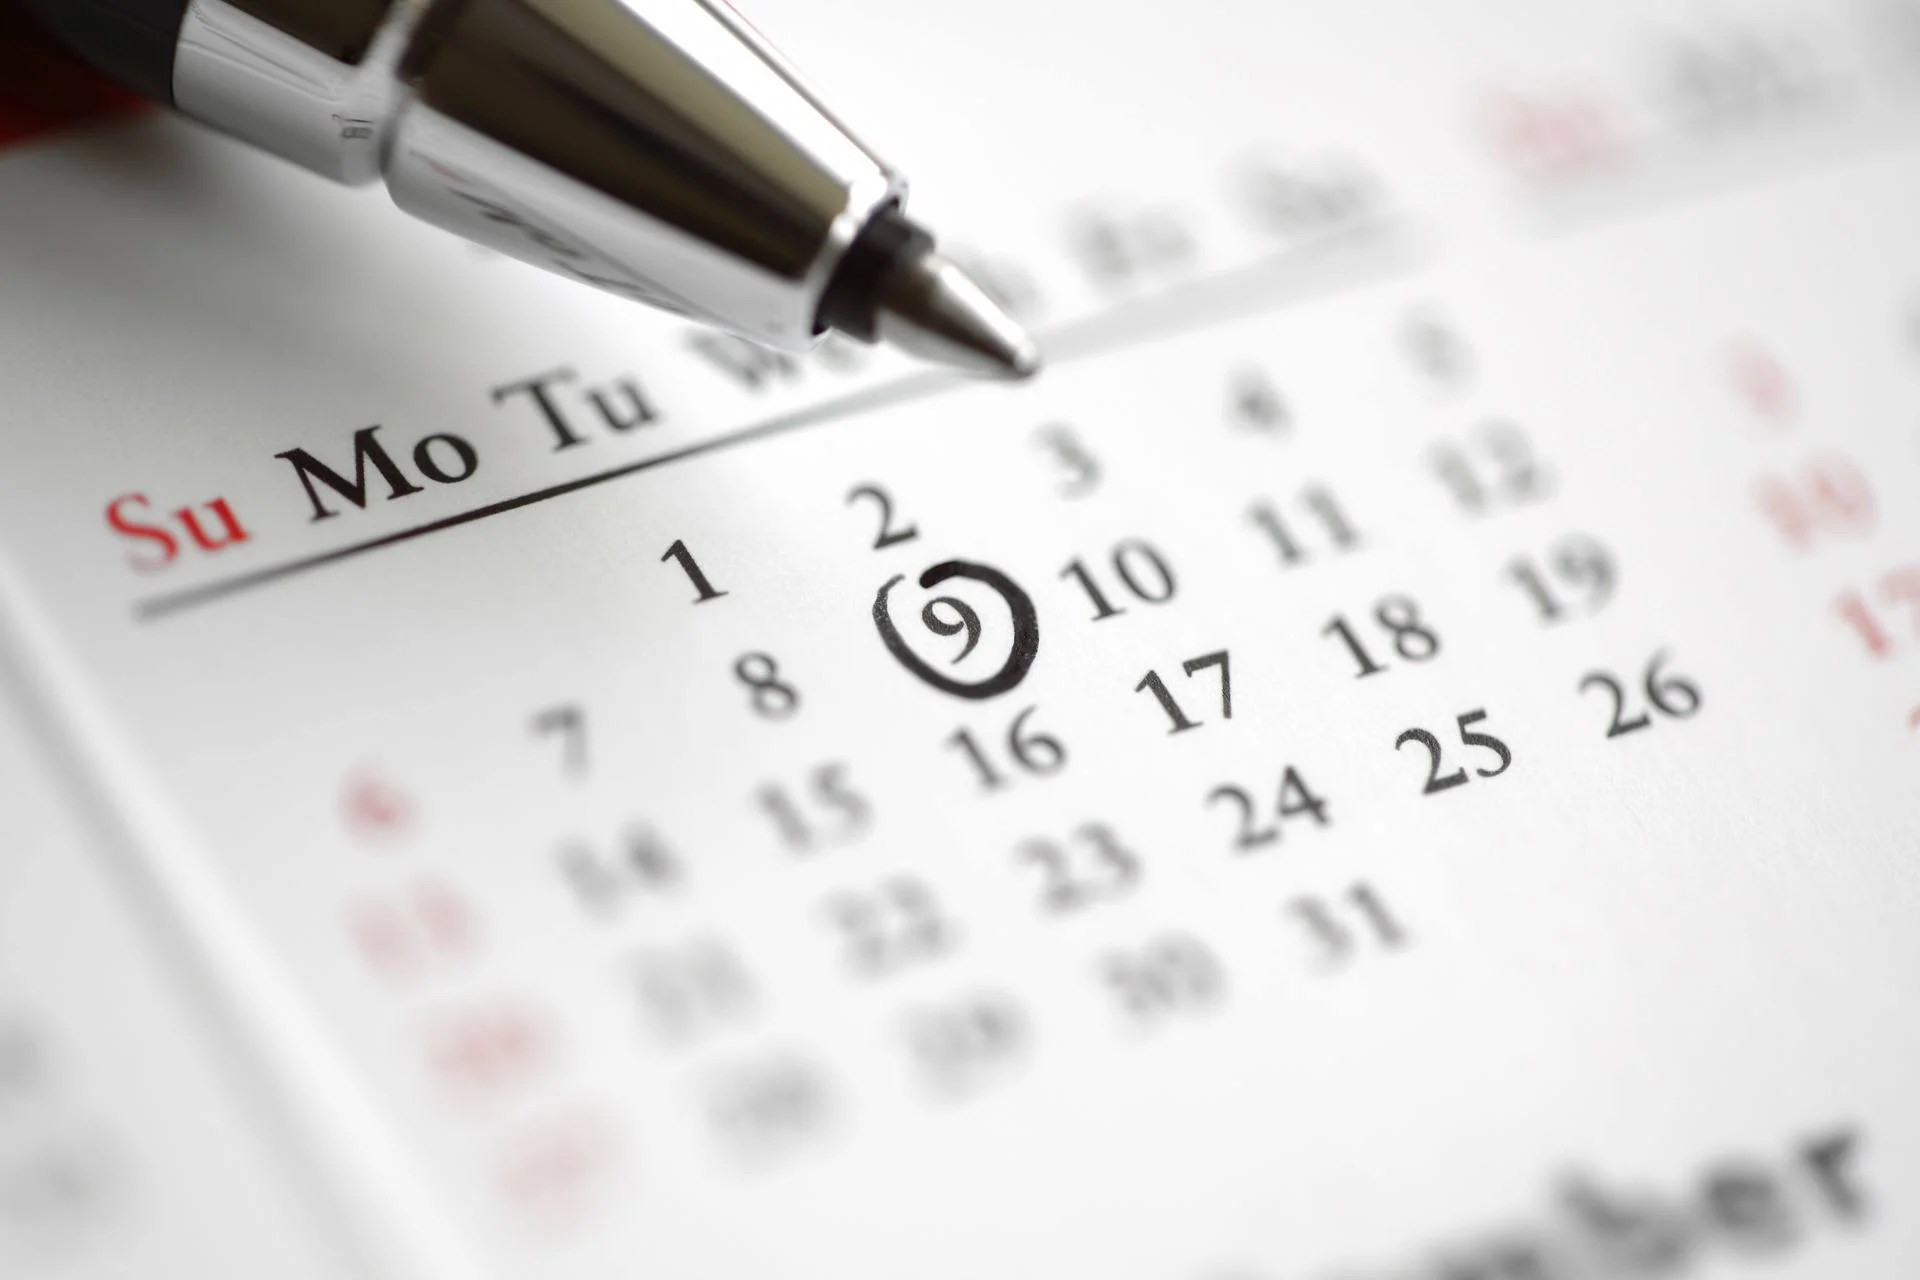 Google Create Calendar Adobe Adobe Capture Cc Android Apps On Google Play 7 Tips To Use Google Calendar In Elearning Elearning